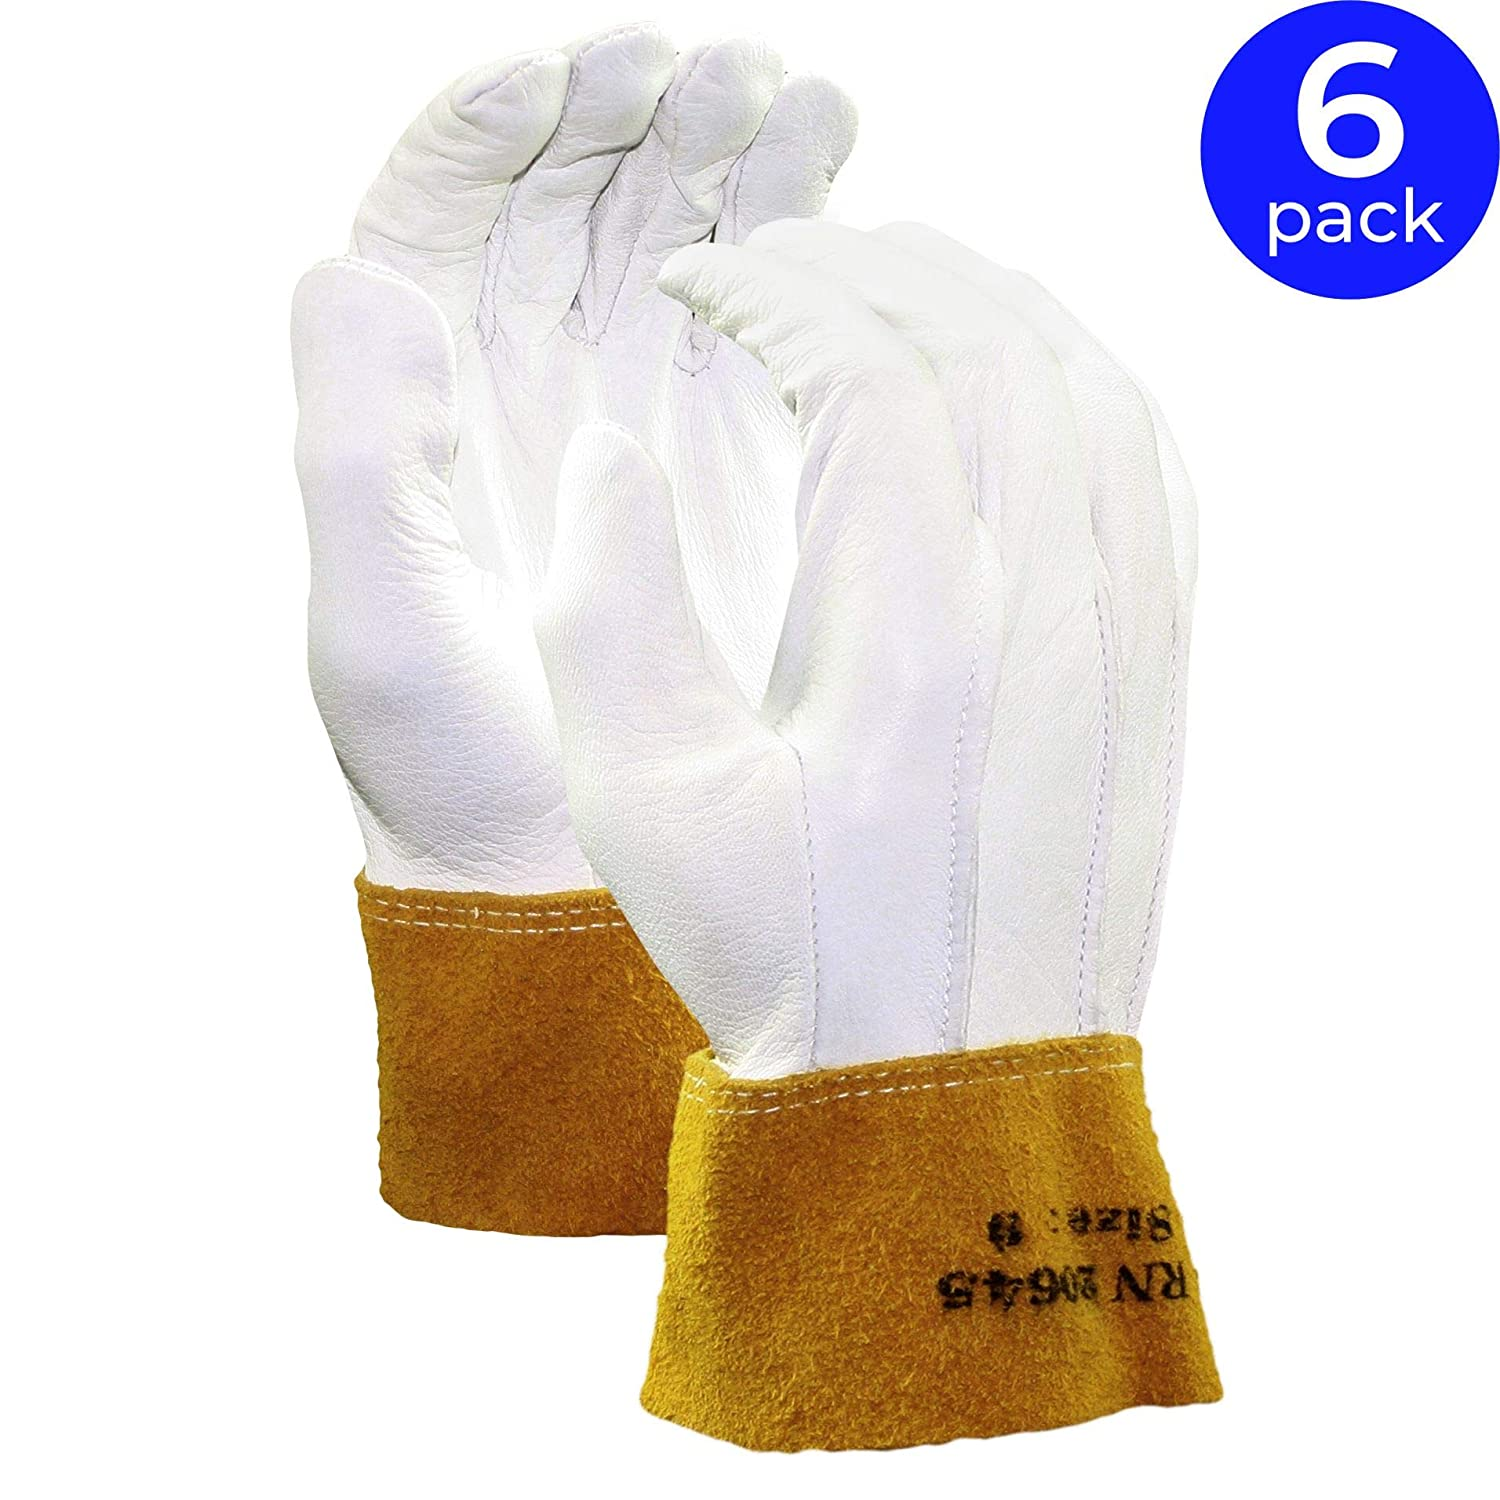 Stauffer Goatskin Max 46% OFF MIG TIG Welding Gloves Cuff Direct store Gol with Leather